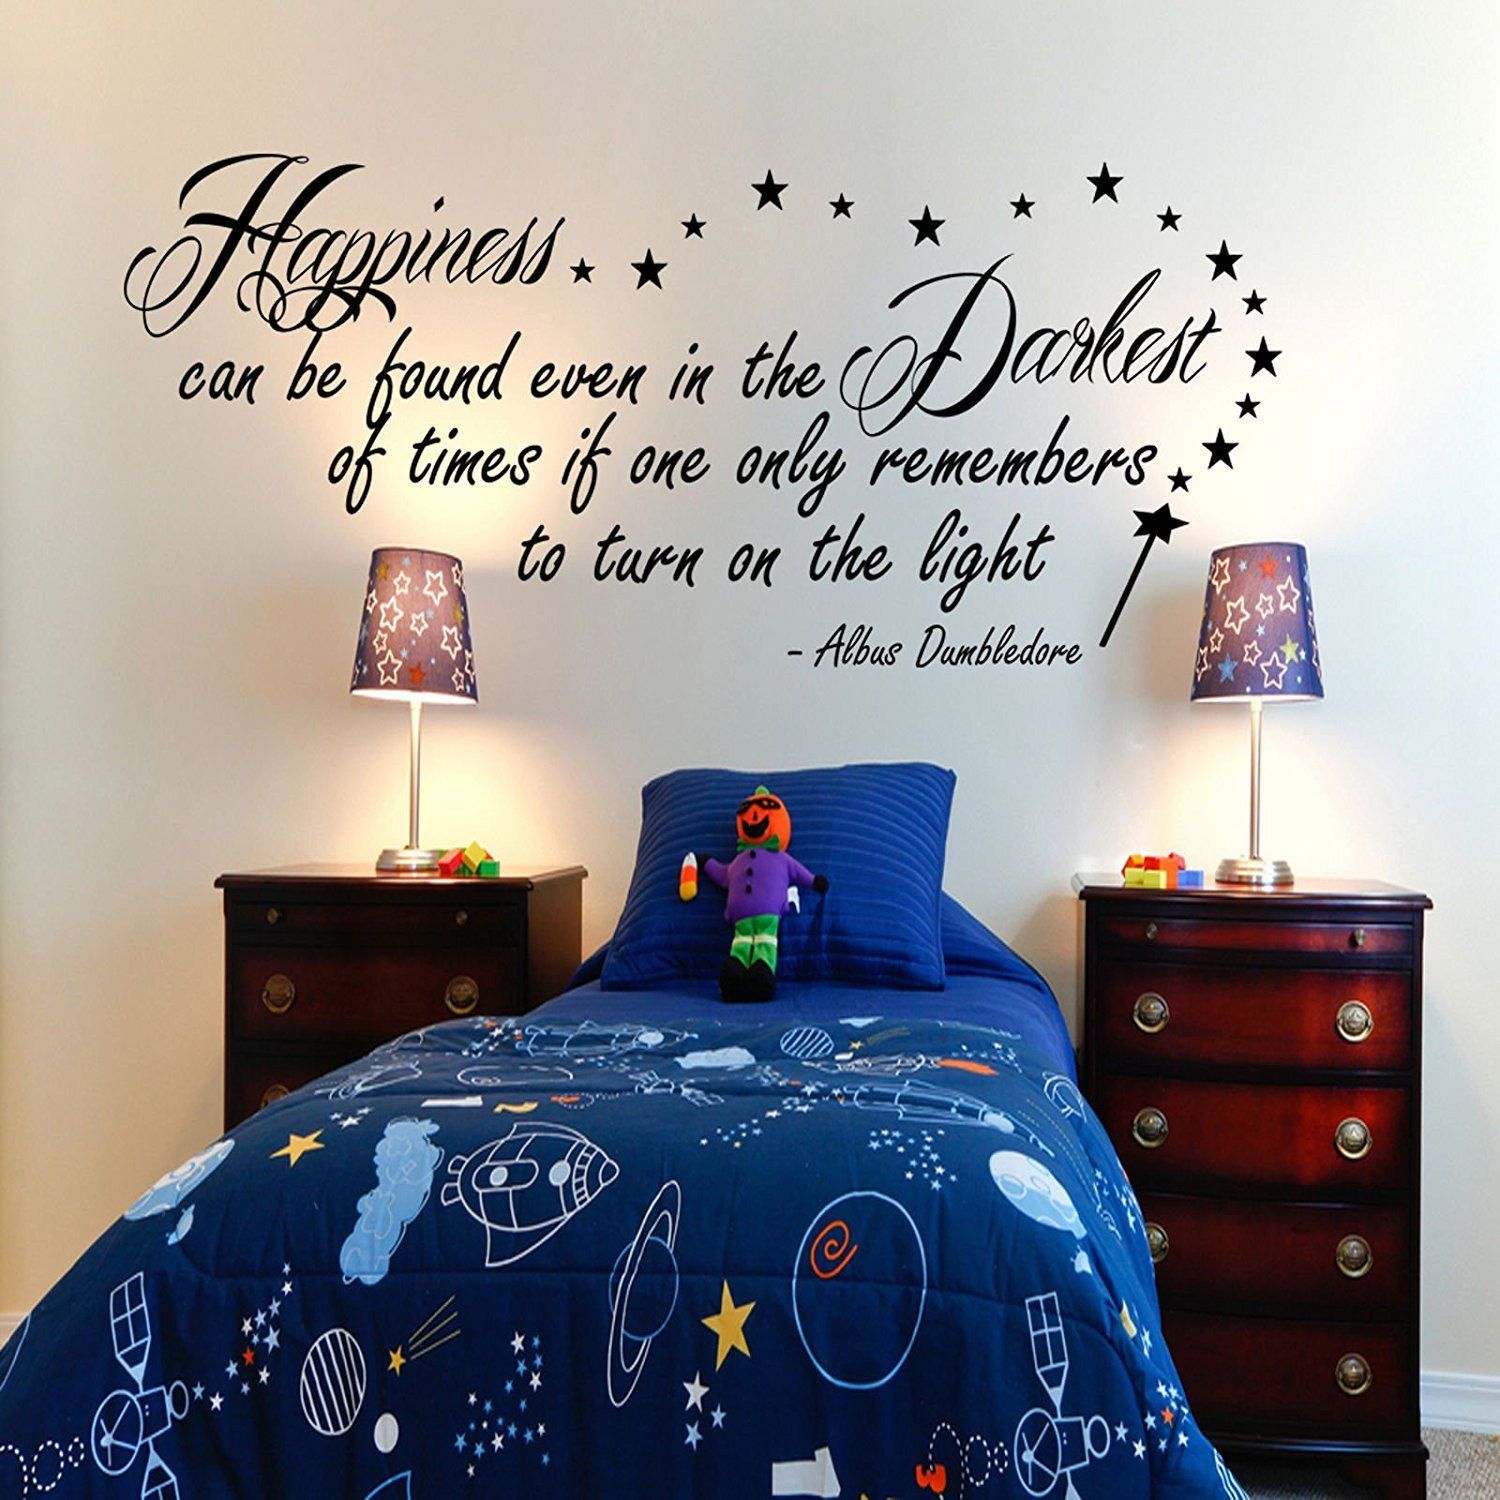 Harry Potter Happiness Can Be Found Dumbledore Inspirational Wall Sticker  Quote 100x55: Amazon.co.uk: Kitchen U0026 Home